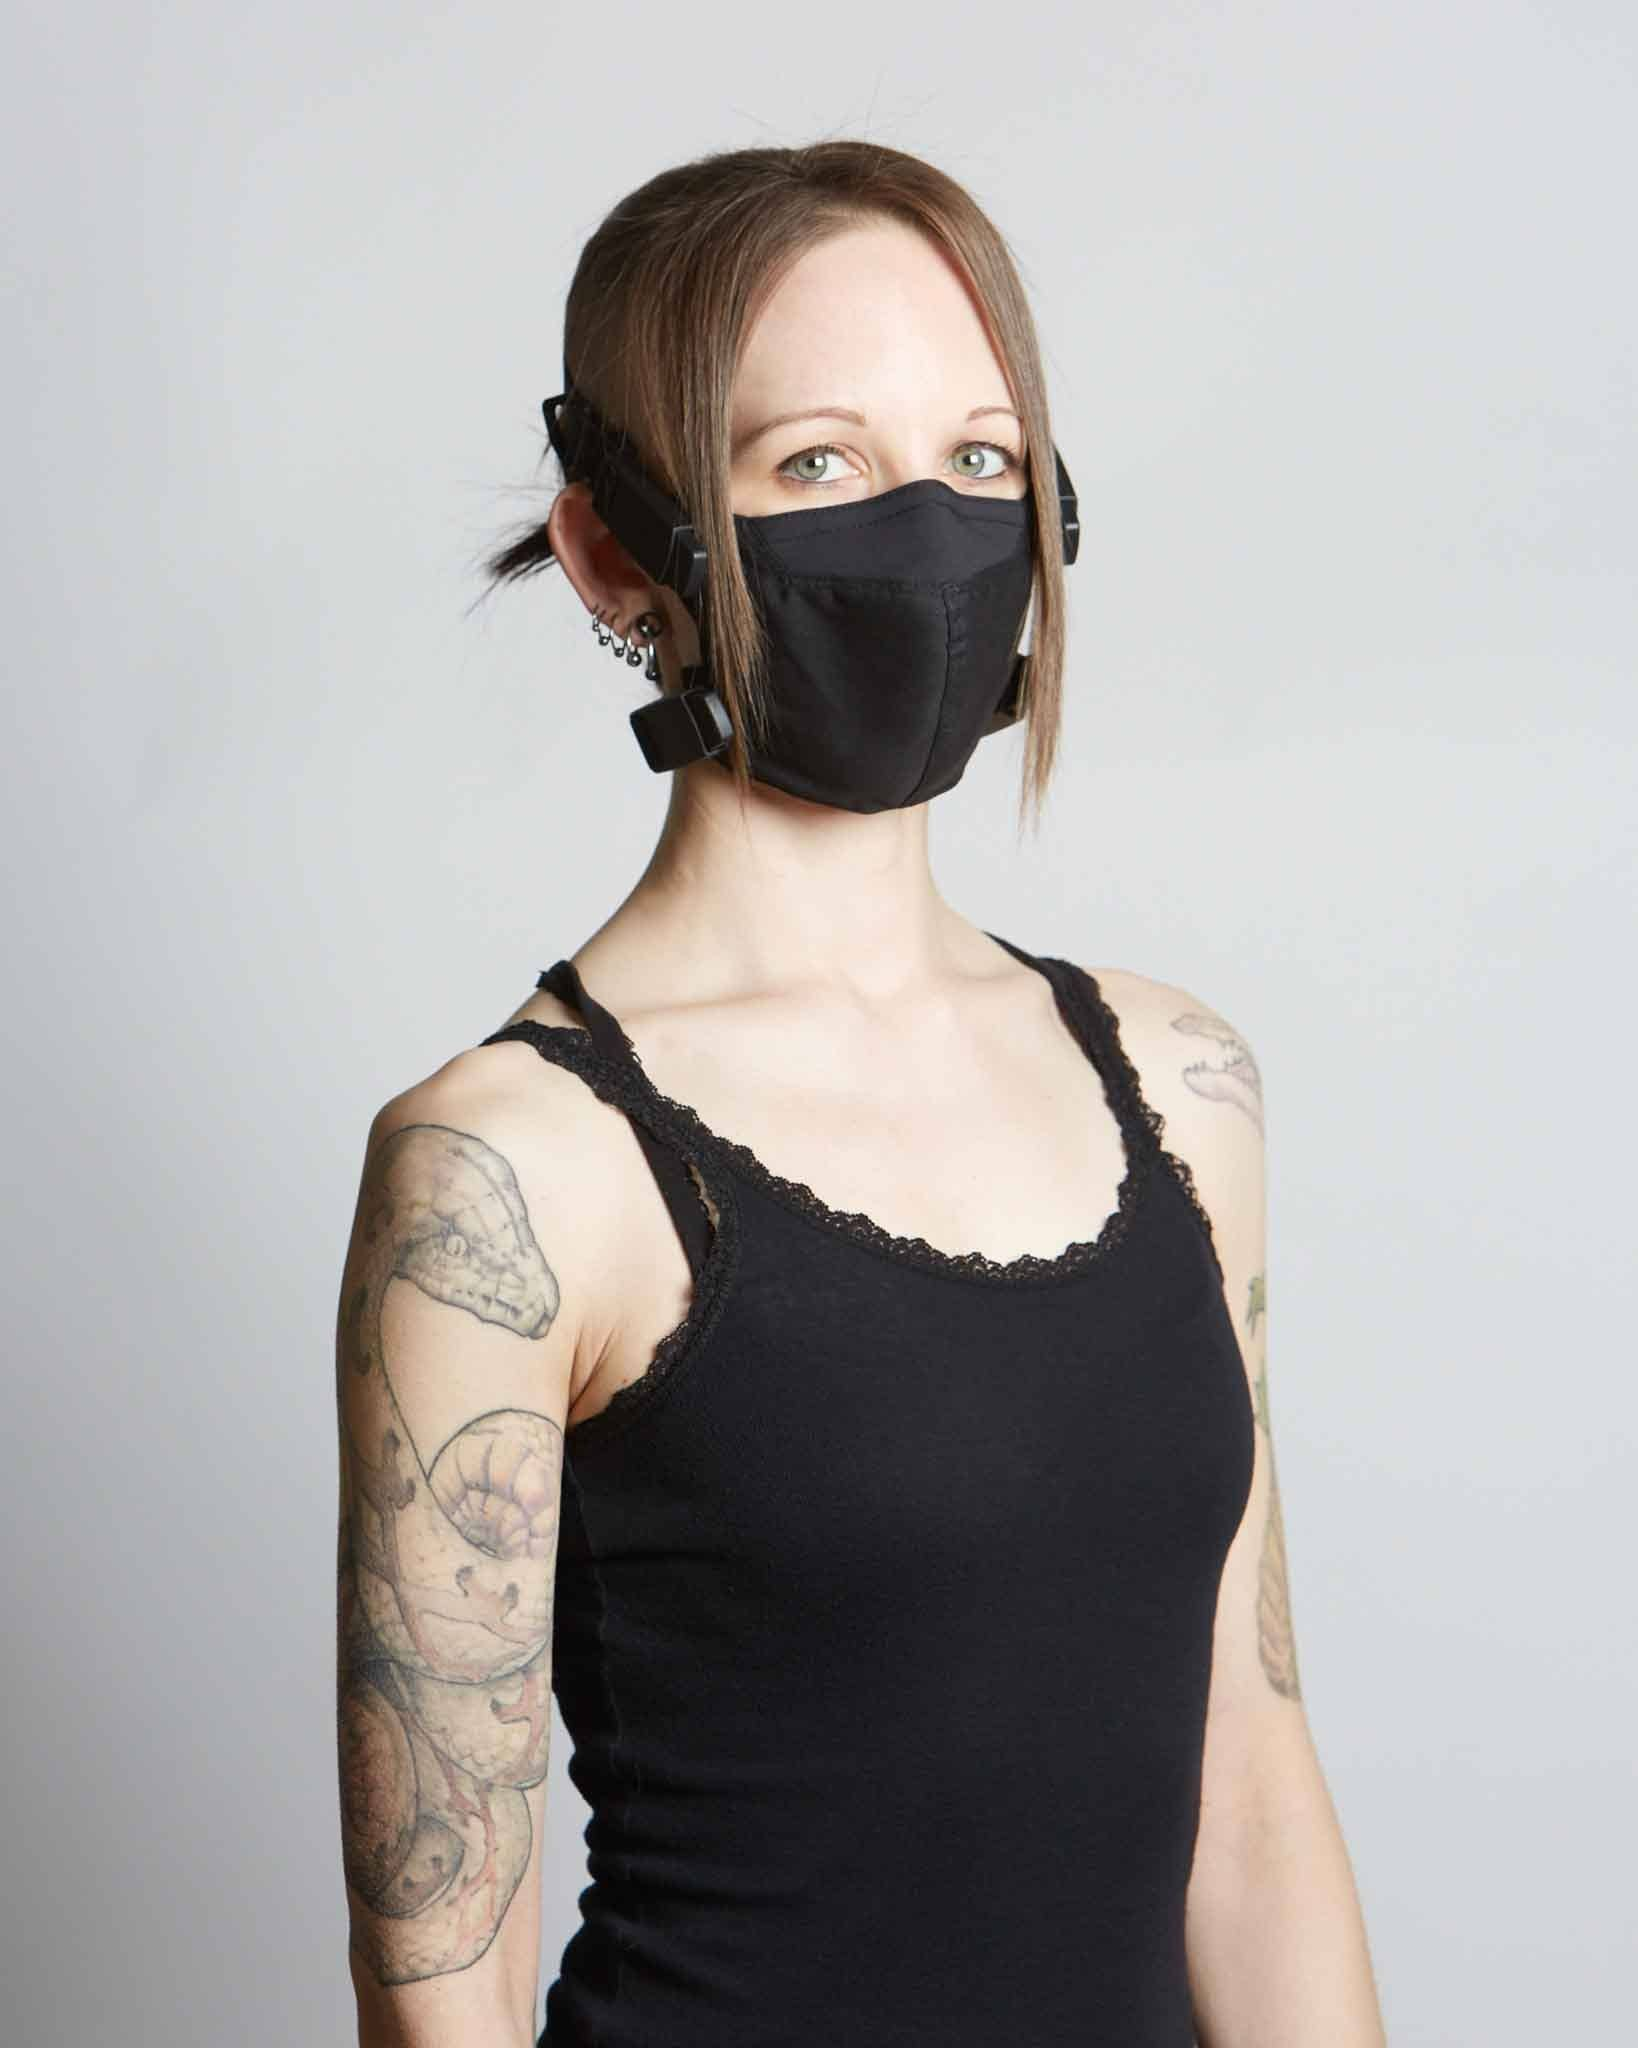 Futuristic streetwear style COVID face mask with magnetic hardware